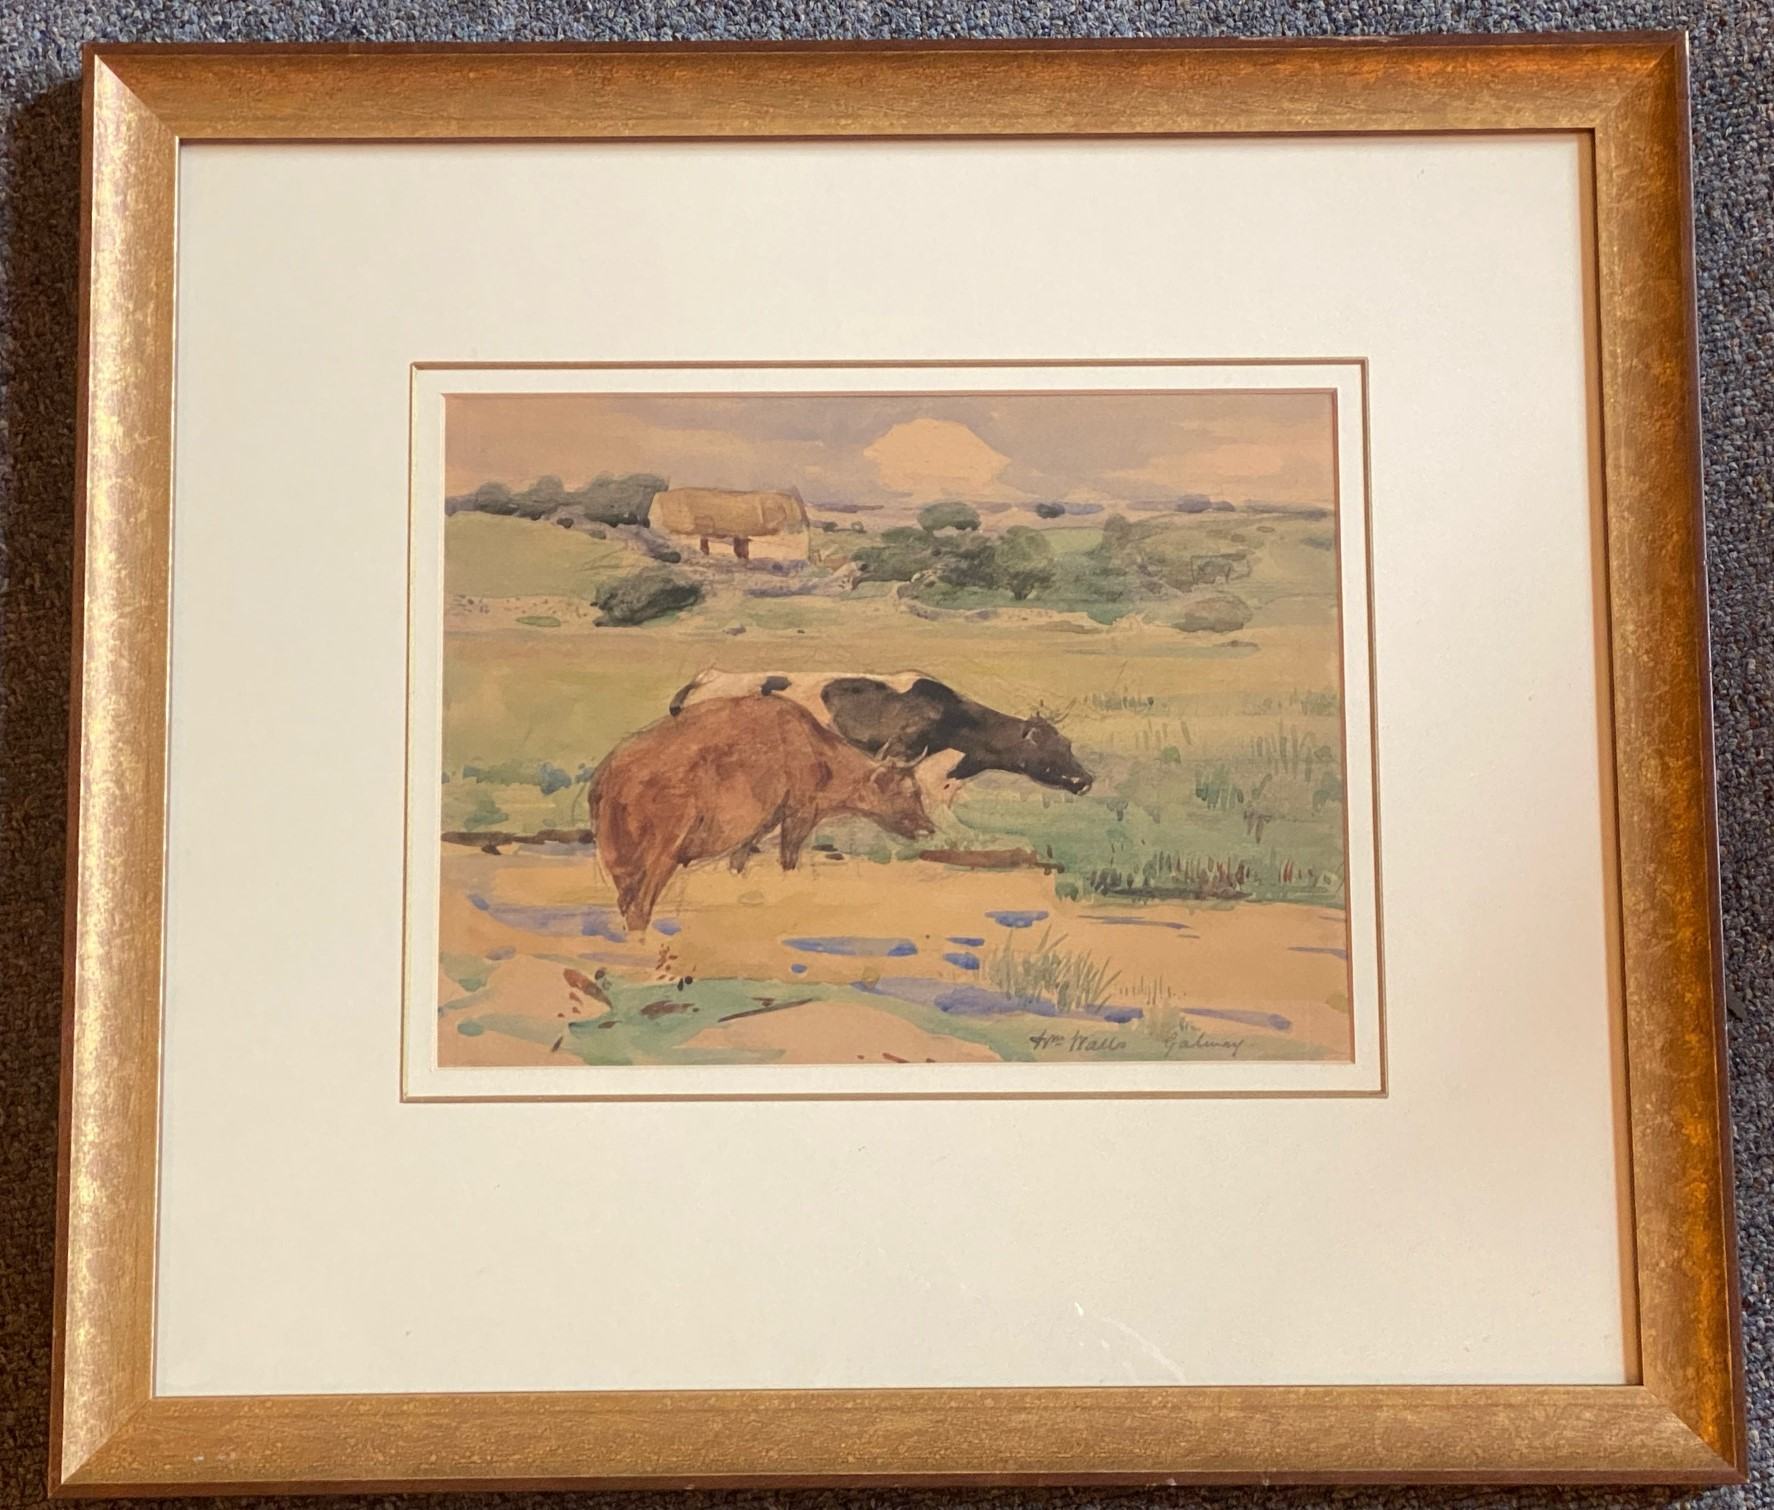 Signed watercolour Galway by Artist William Walls, 1860-1942, Exhibited – R.S.A, R.A, R.S.W - Image 3 of 4